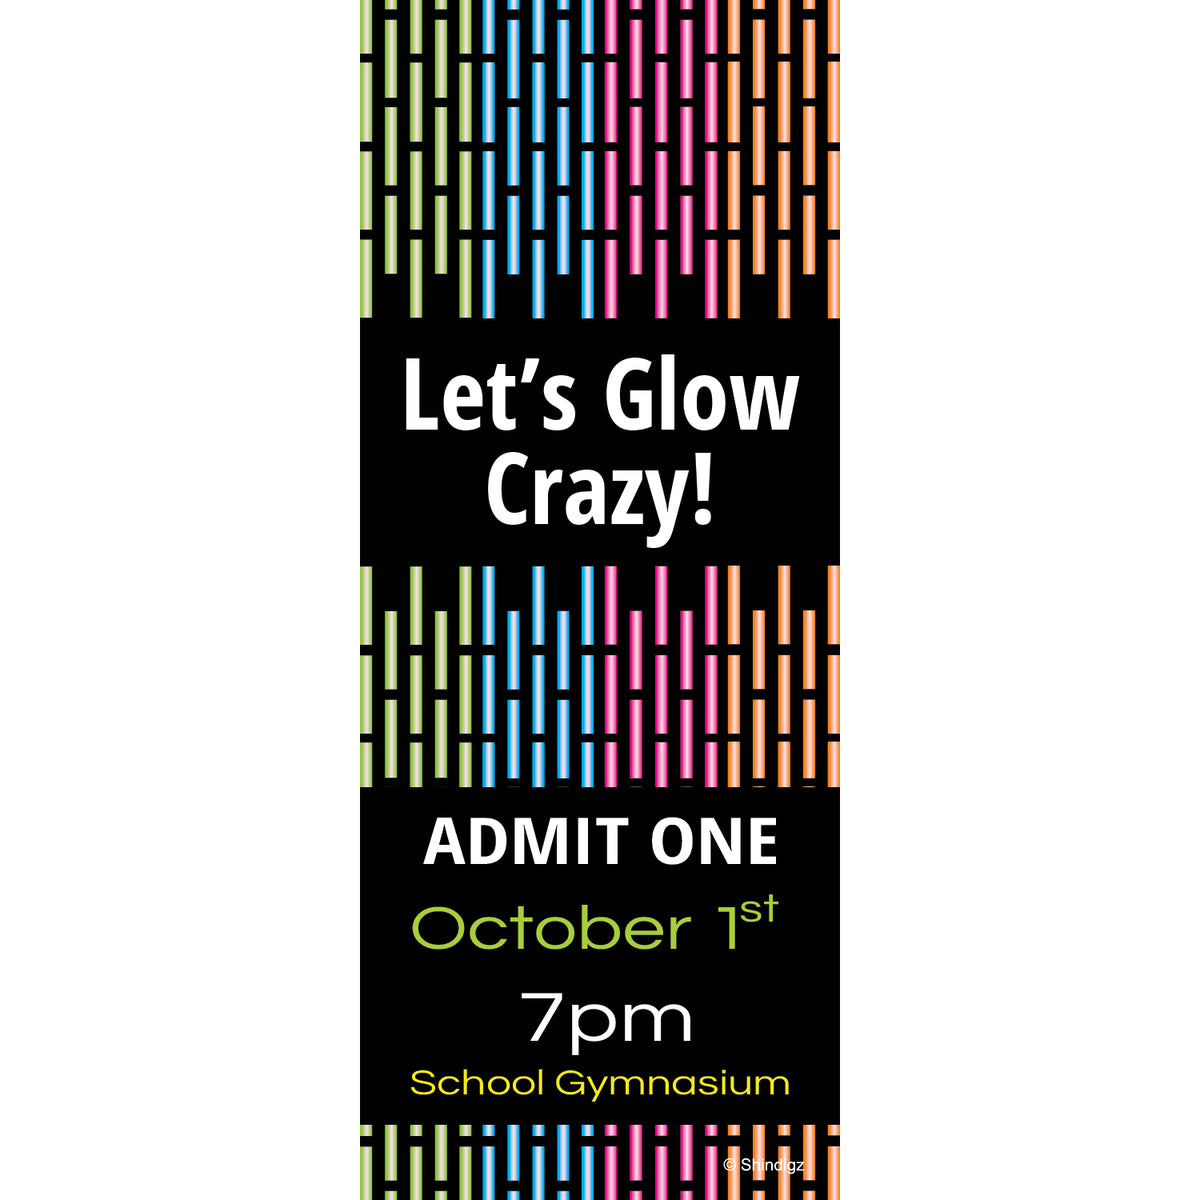 Let's Glow Crazy Personalized Tickets